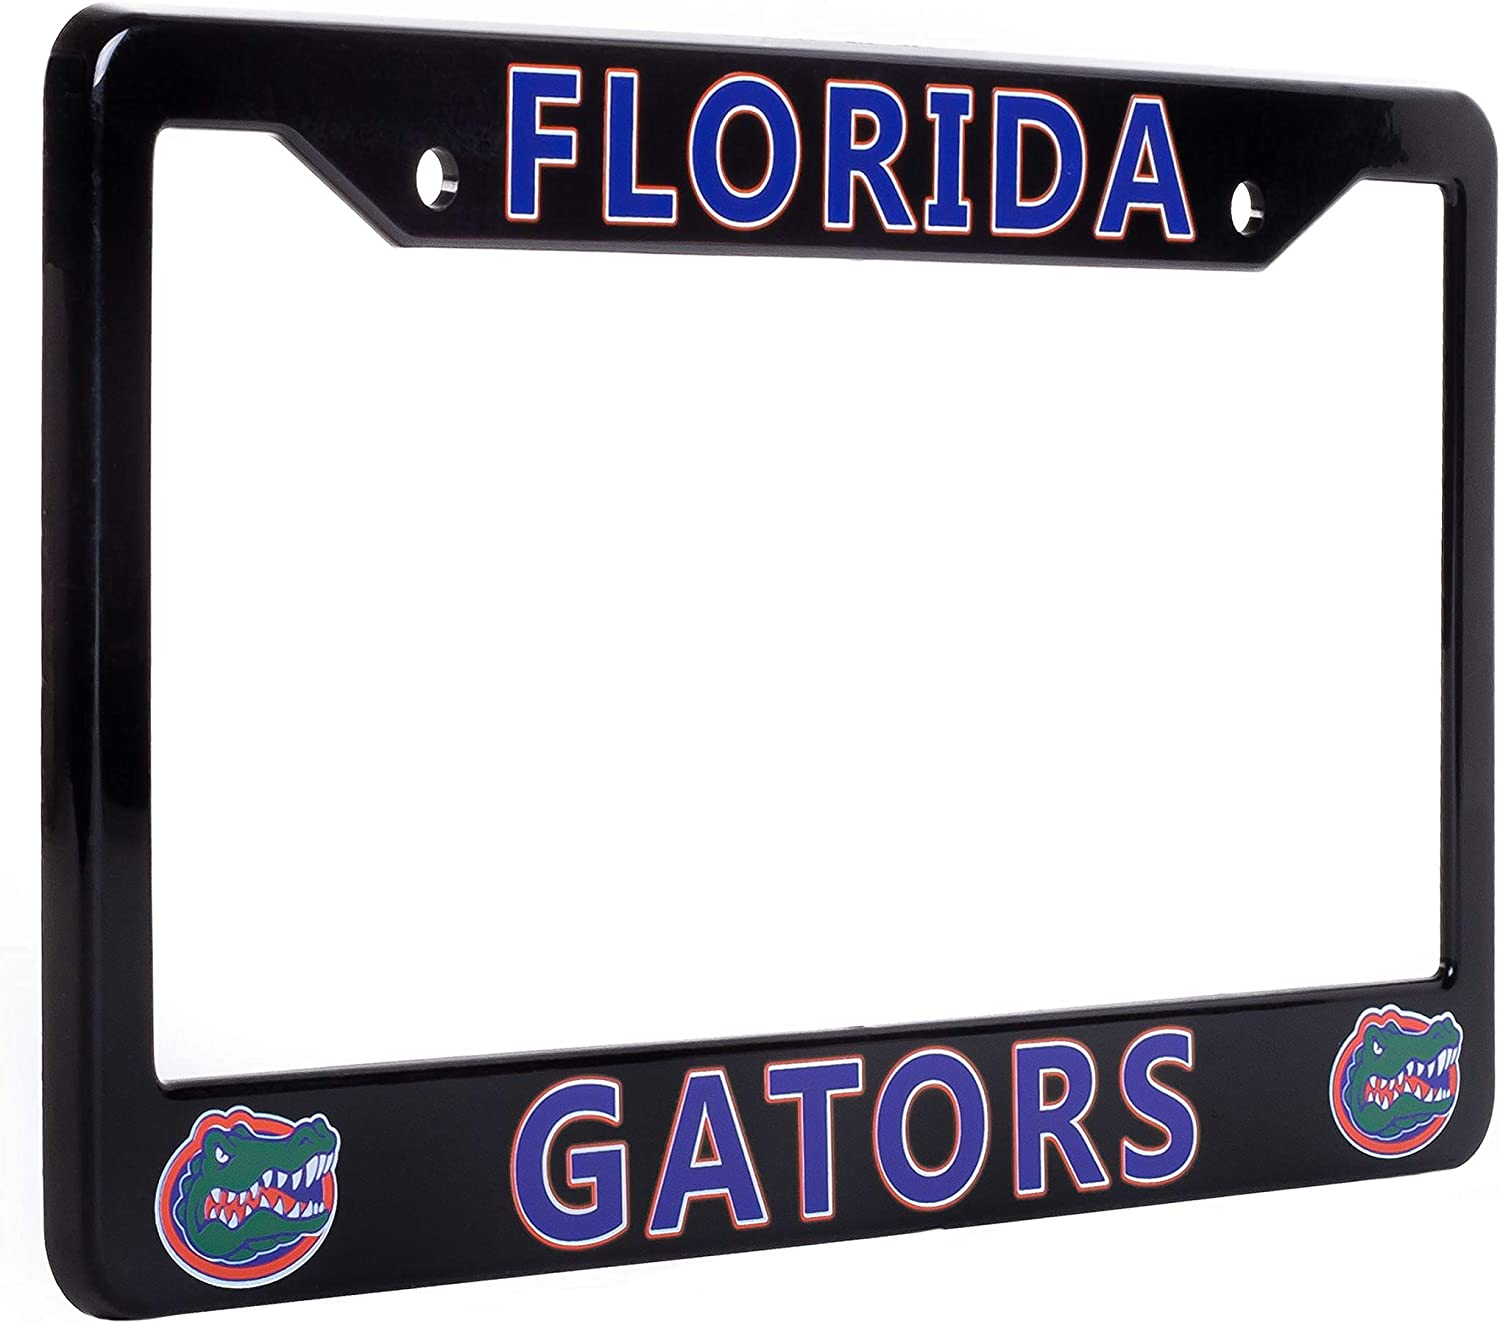 "EliteAuto3K Florida Gators License Plate Frame Cover Black NCAA Car Accessory Ideal Gift for Sports Fans /& Supporters 12.25/"" x 6.25/"" Slim Design"